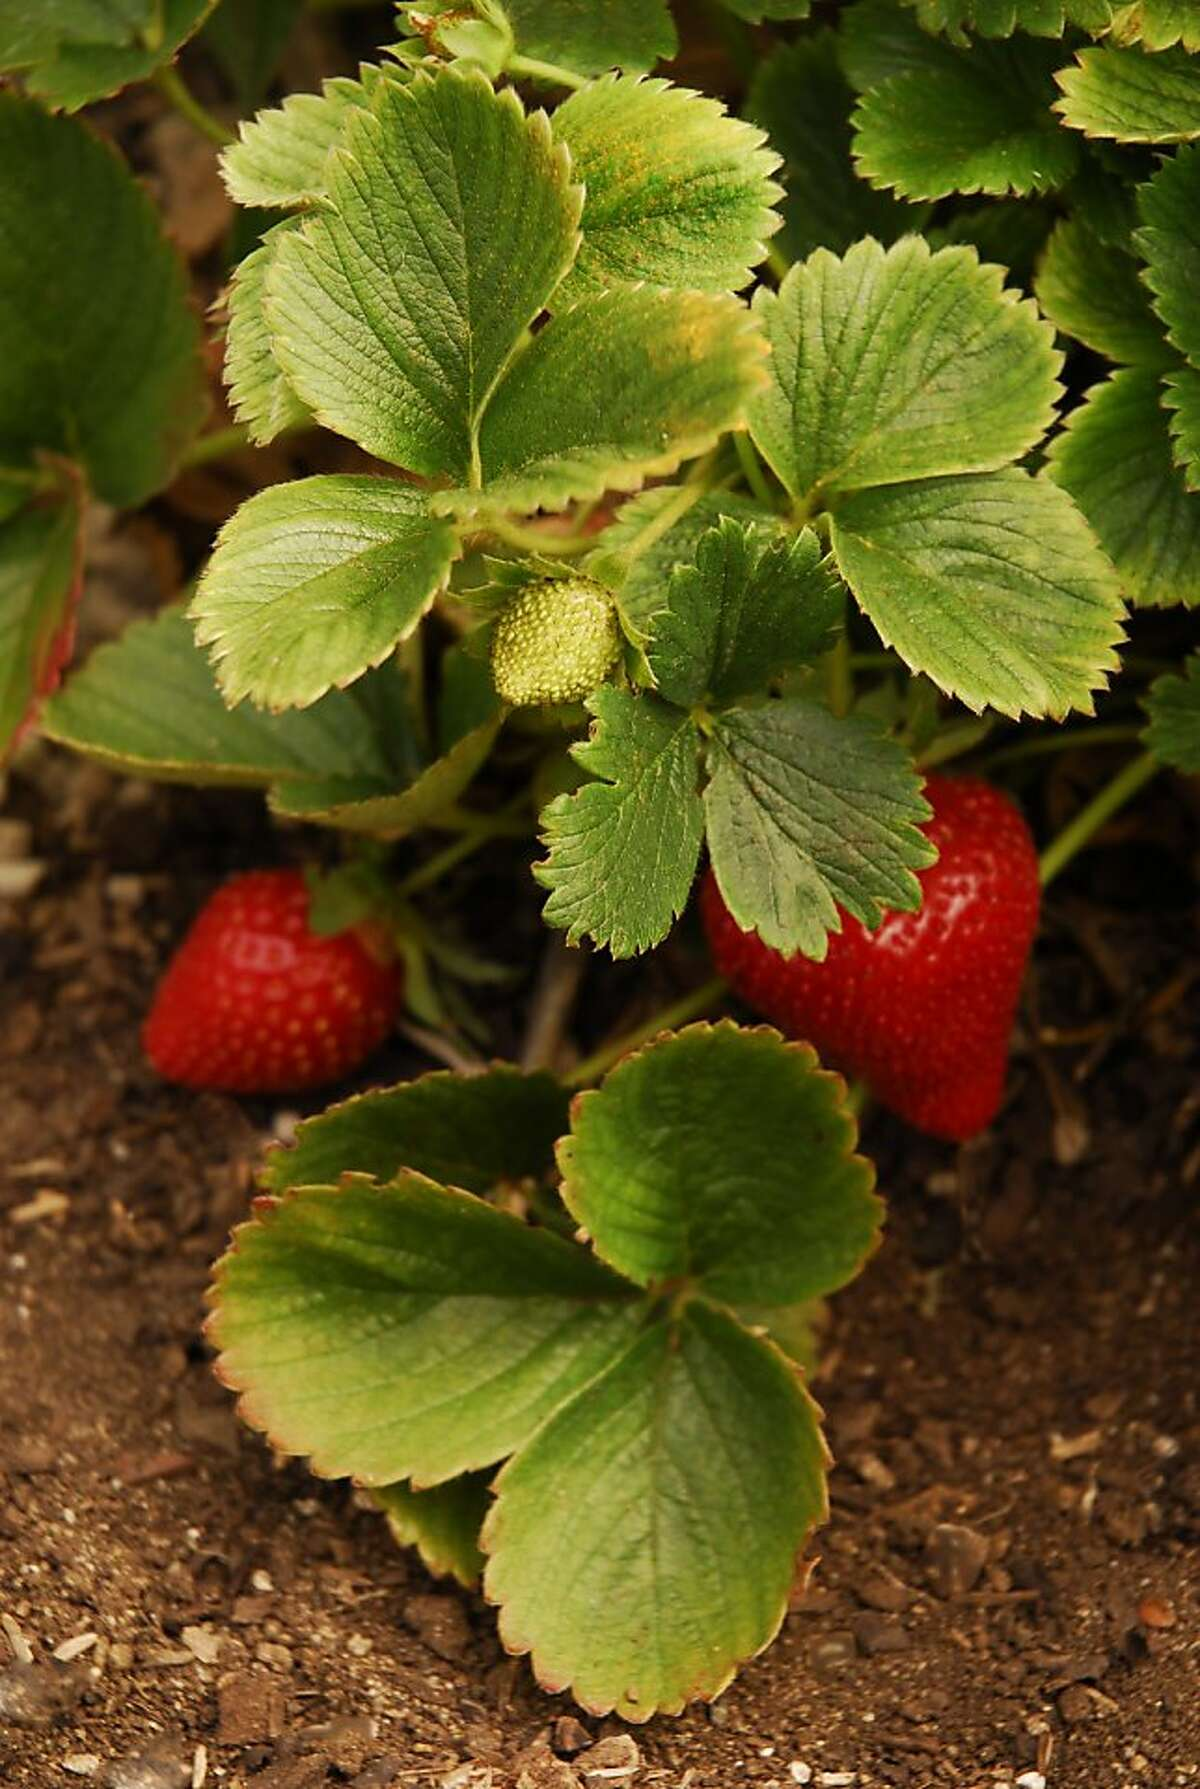 In cooler weather, strawberries may be firmer when ripe, but should be able to produce a good crop.